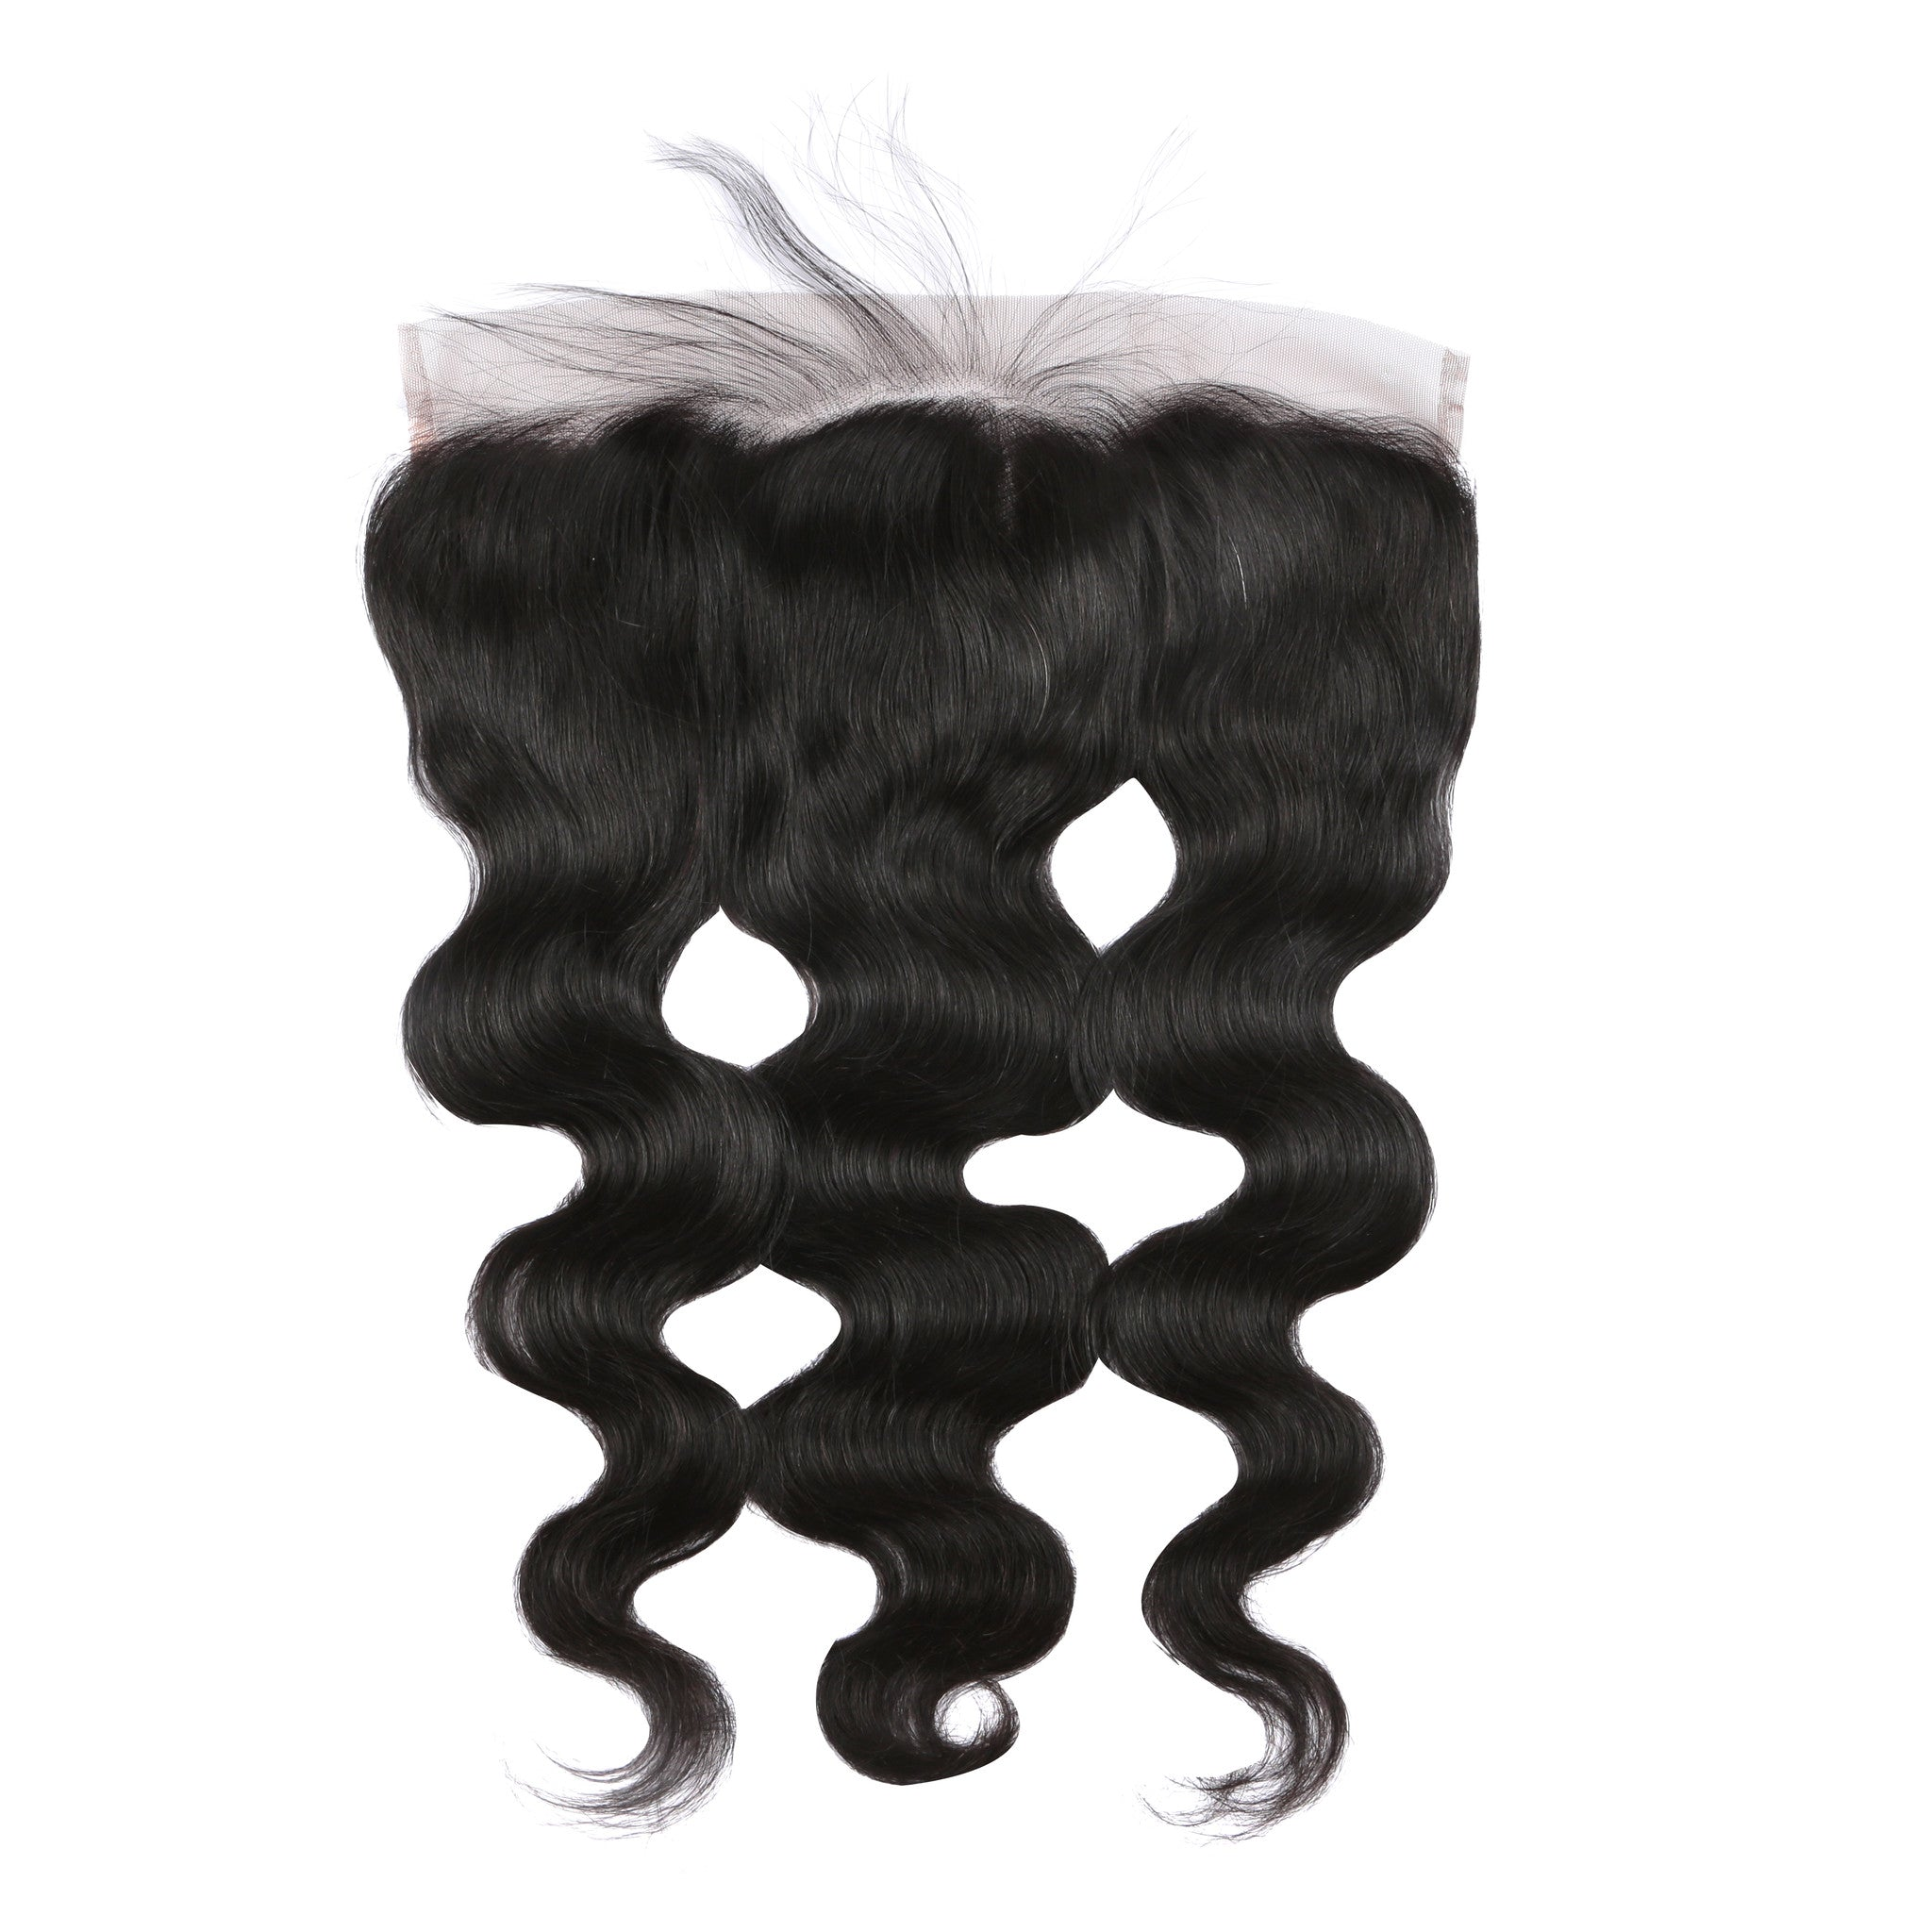 Body Wave Lace Frontal 13'' by 4'' - Volletta